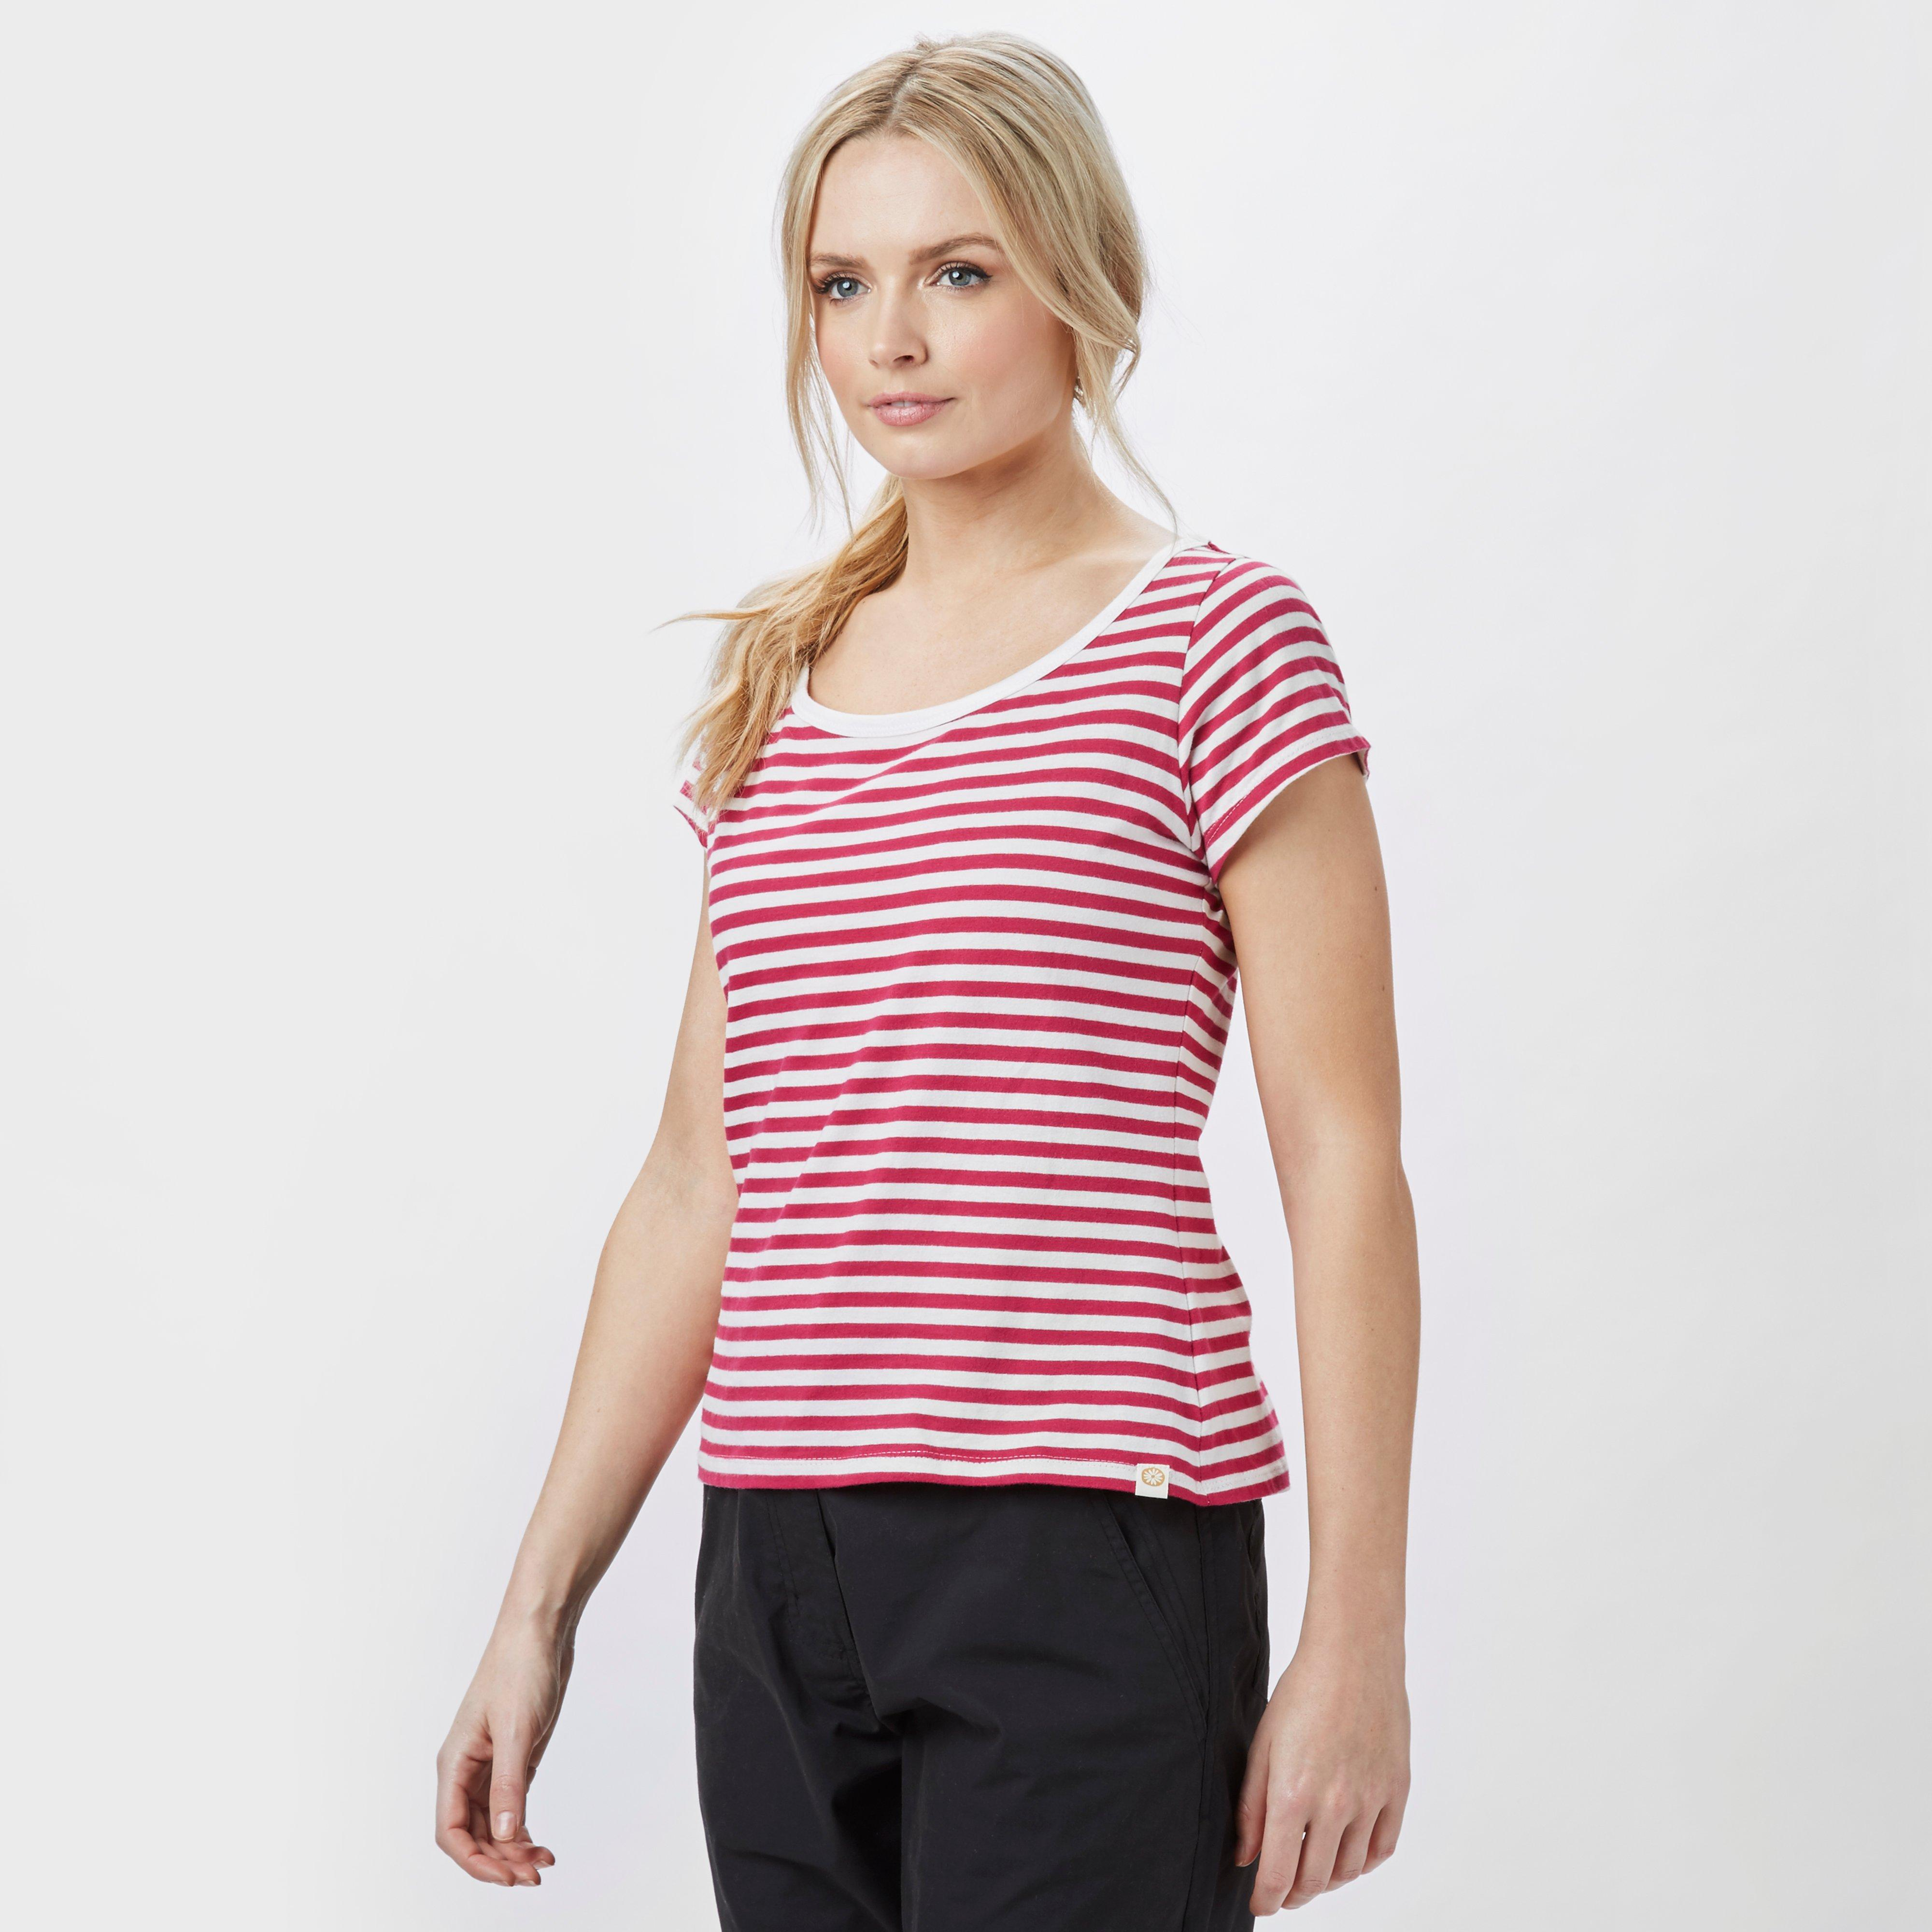 One Earth Women's Maria Striped Tee, Red